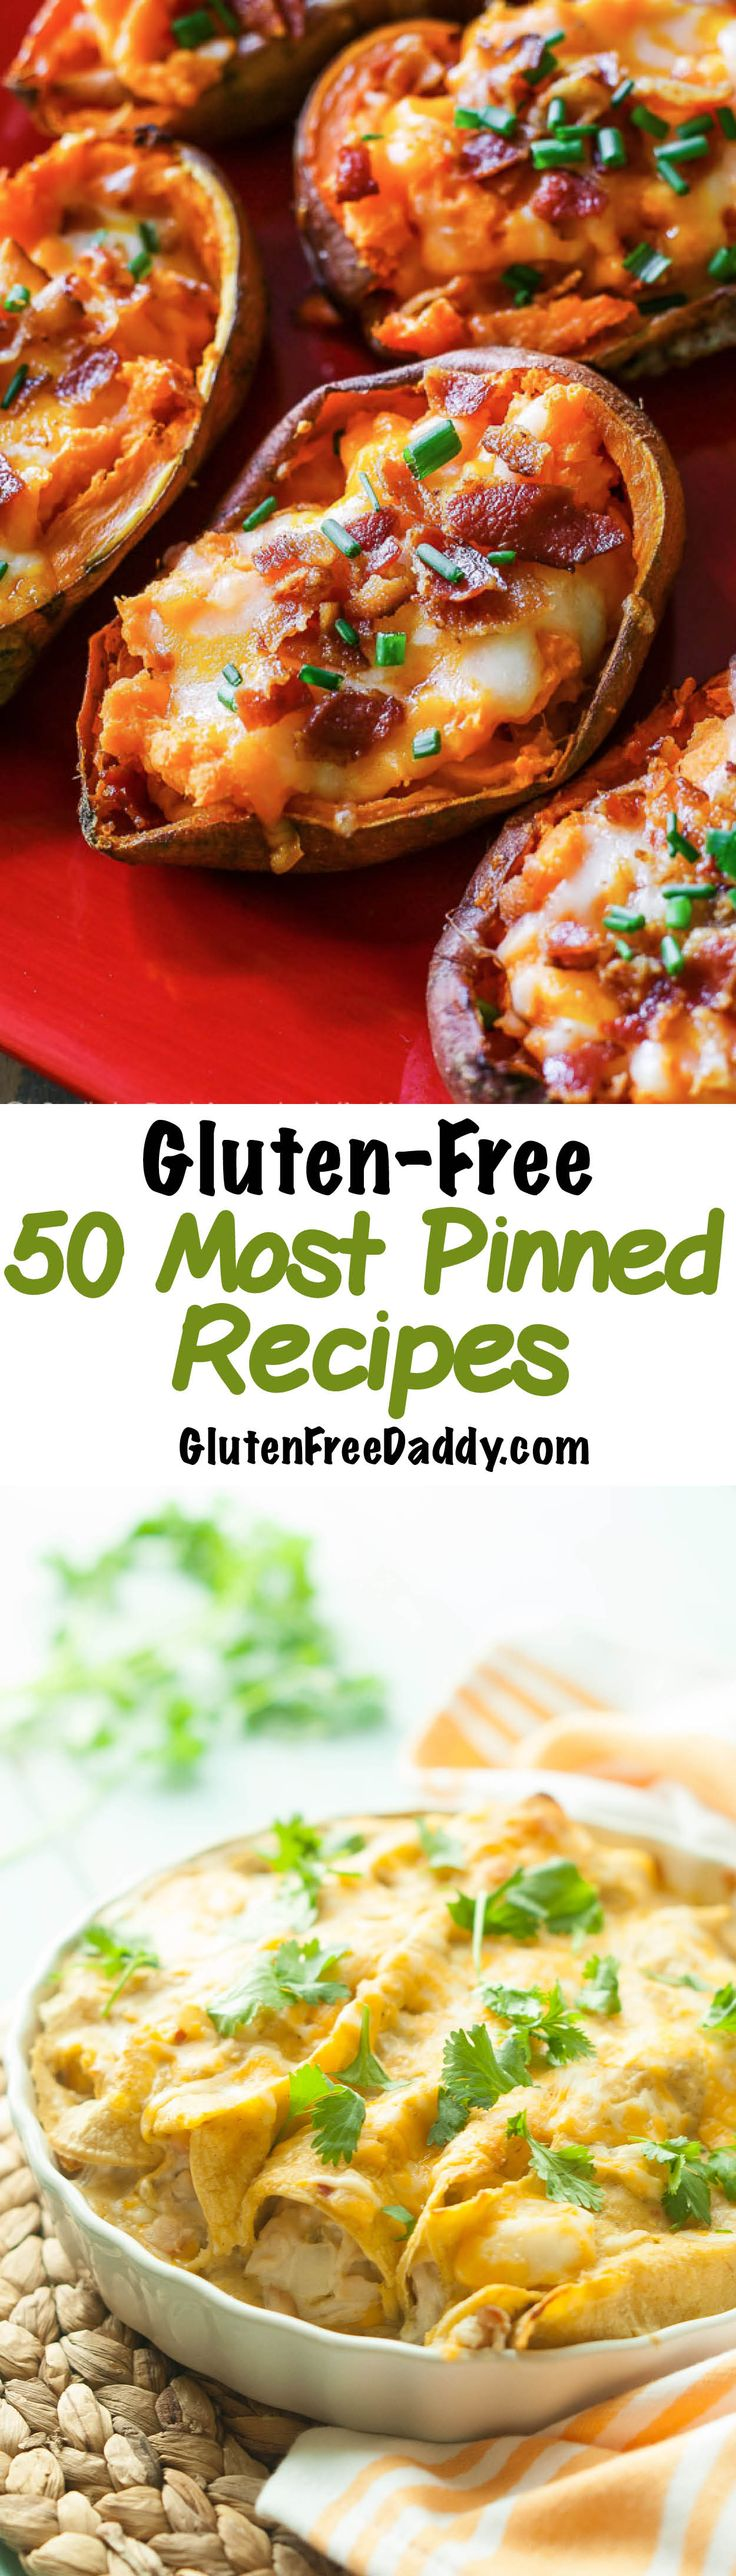 The 50 Best Ever Most Pinned Gluten Free Recipes You Will Find